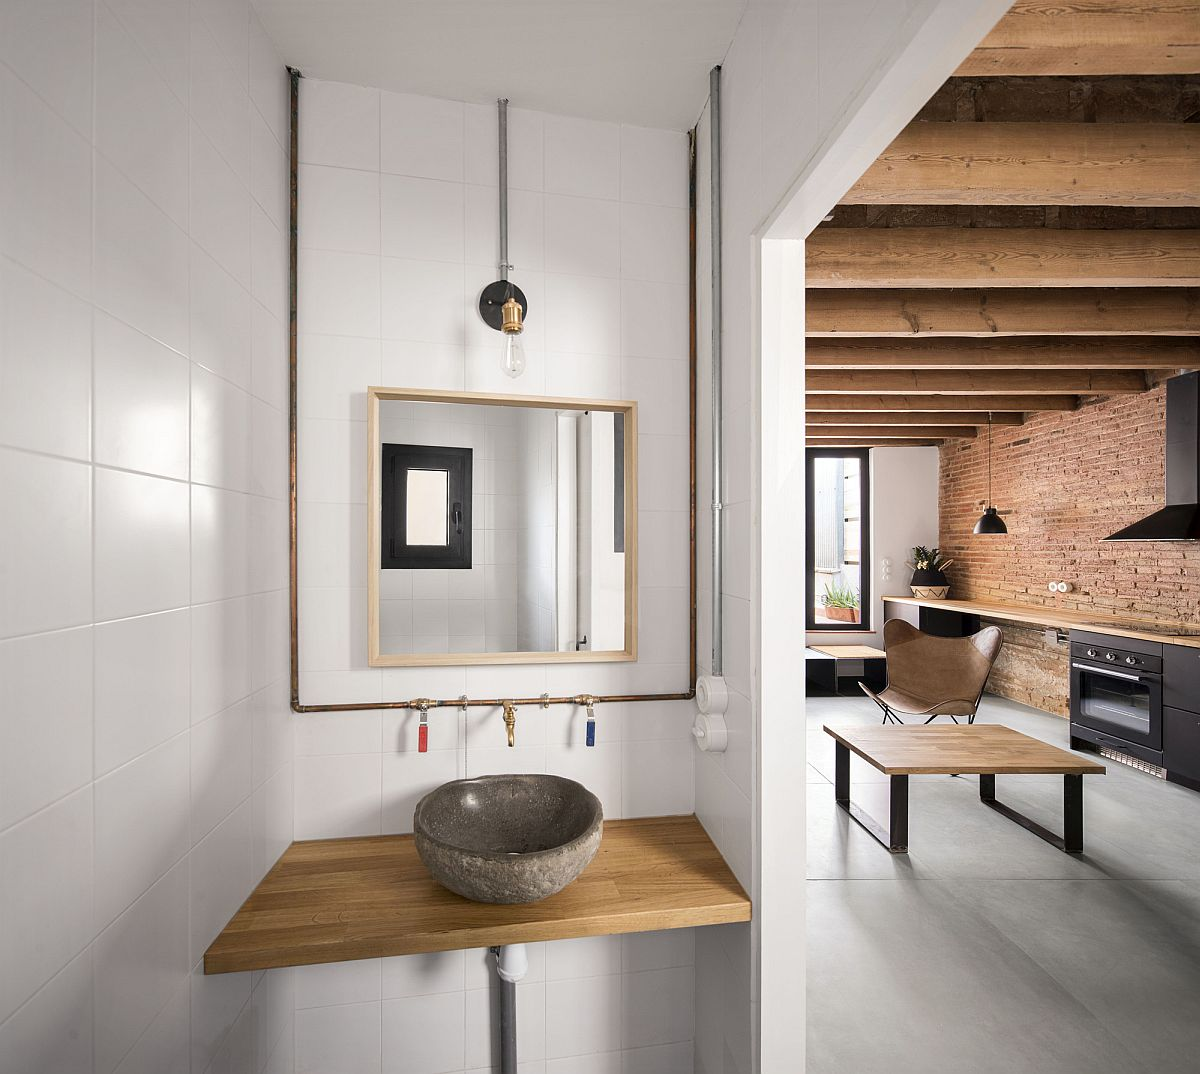 Bathroom and shower area are separated from rest of the apartment interior